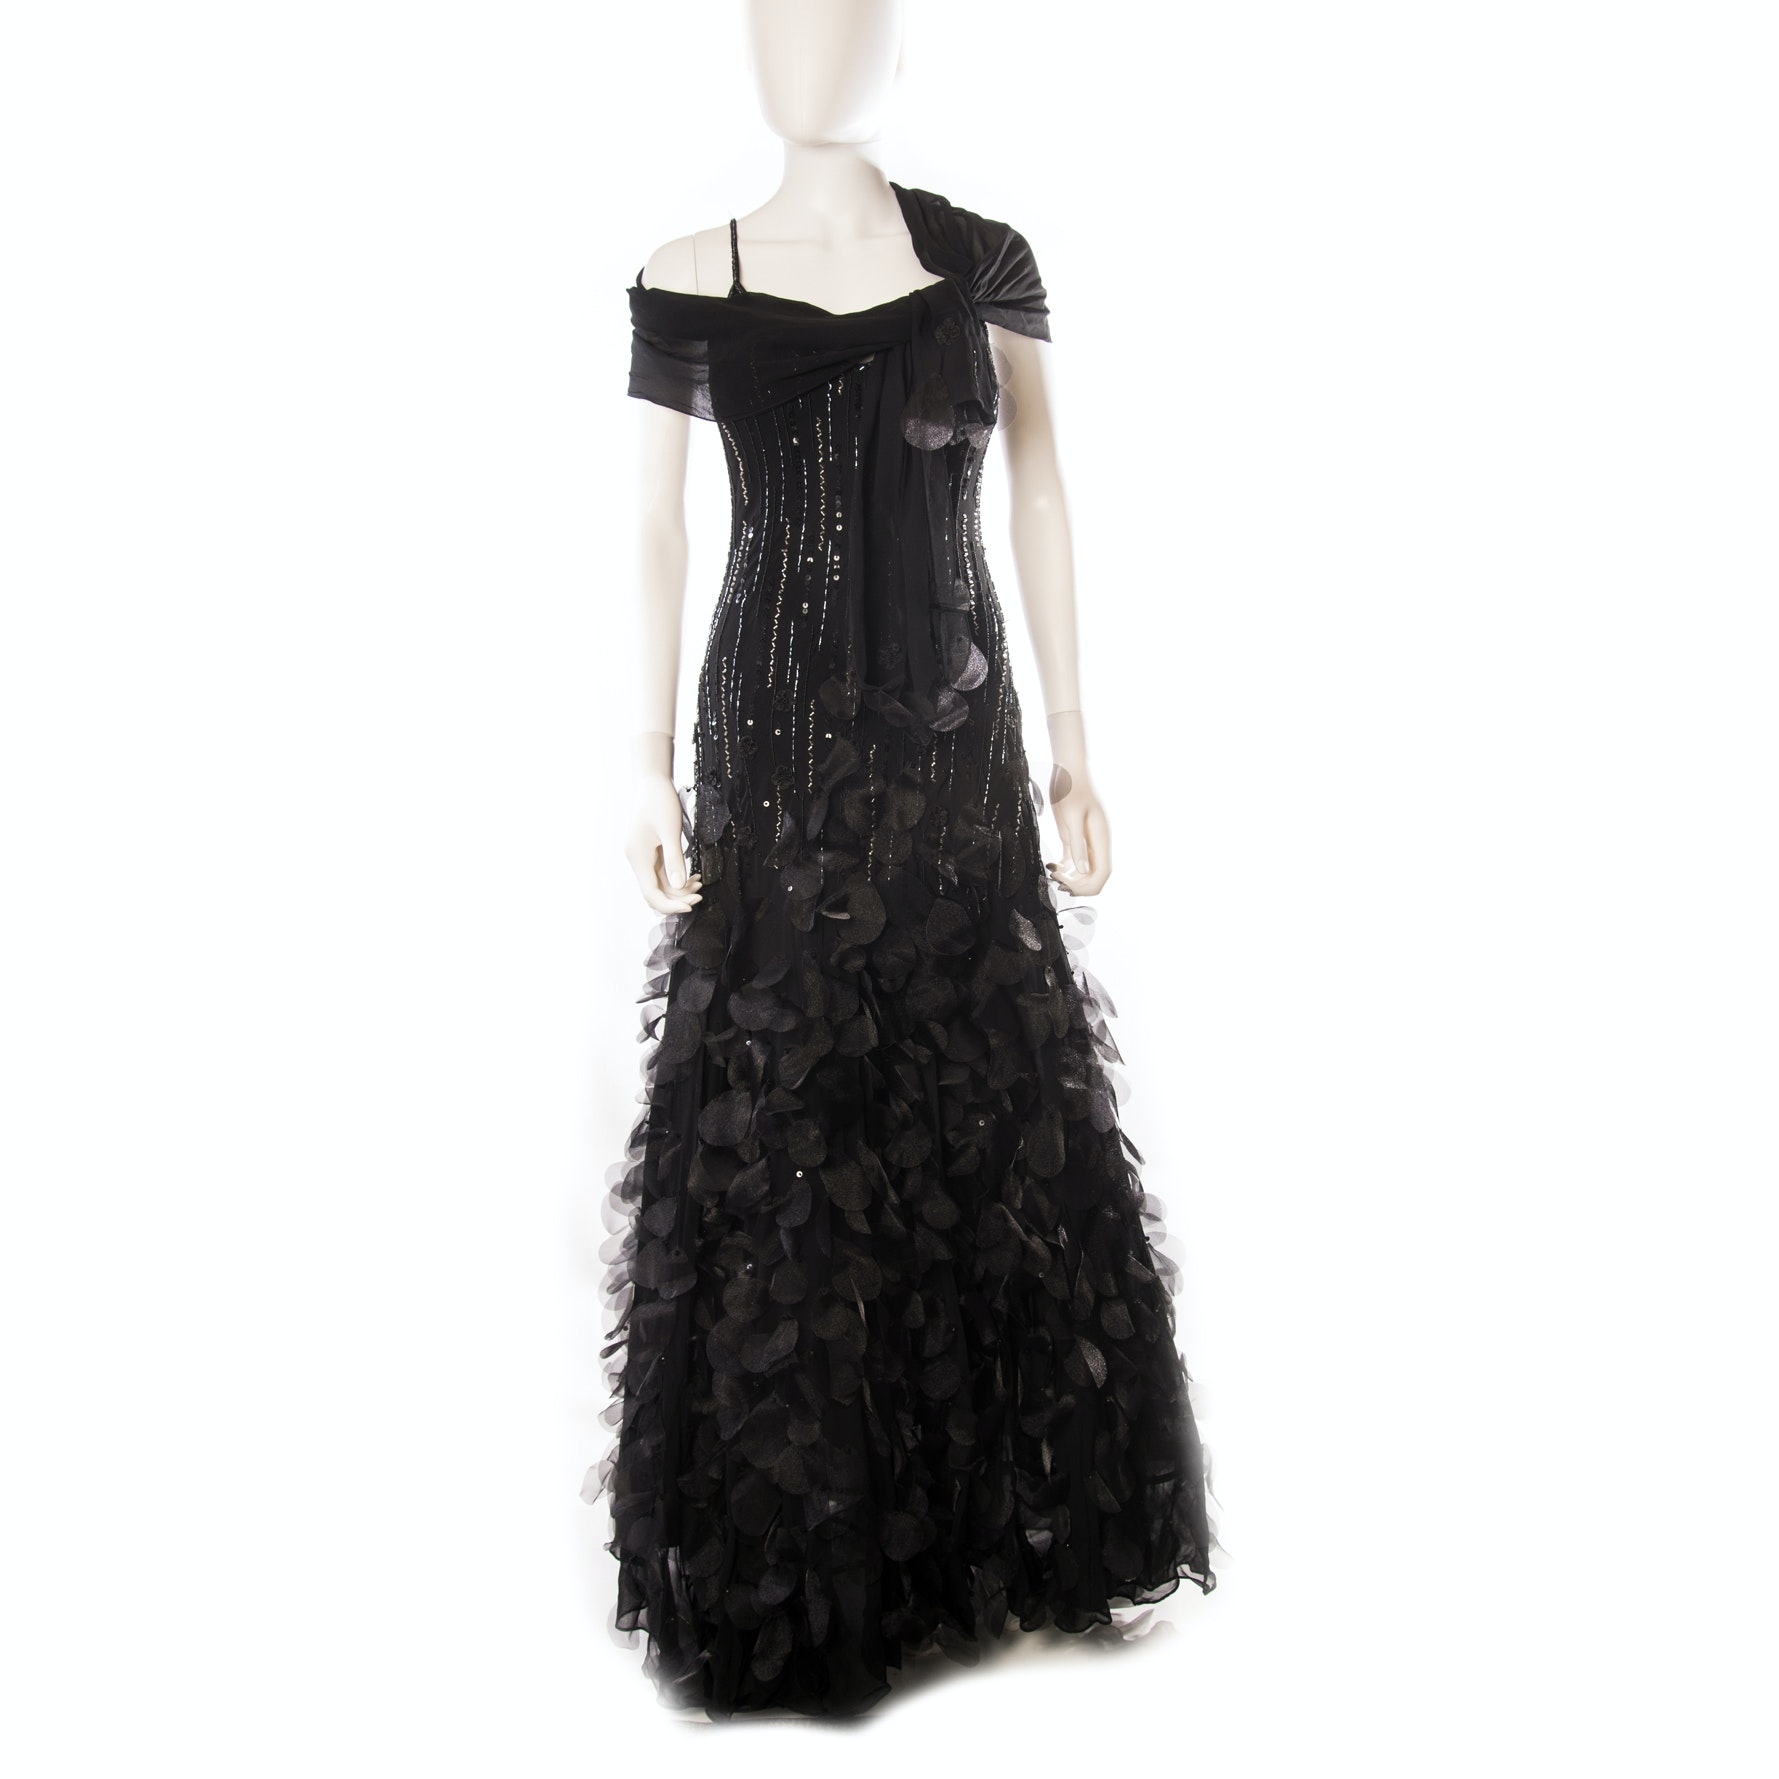 Aspeed Black Hand Beaded Embellished Evening Gown with Scarf